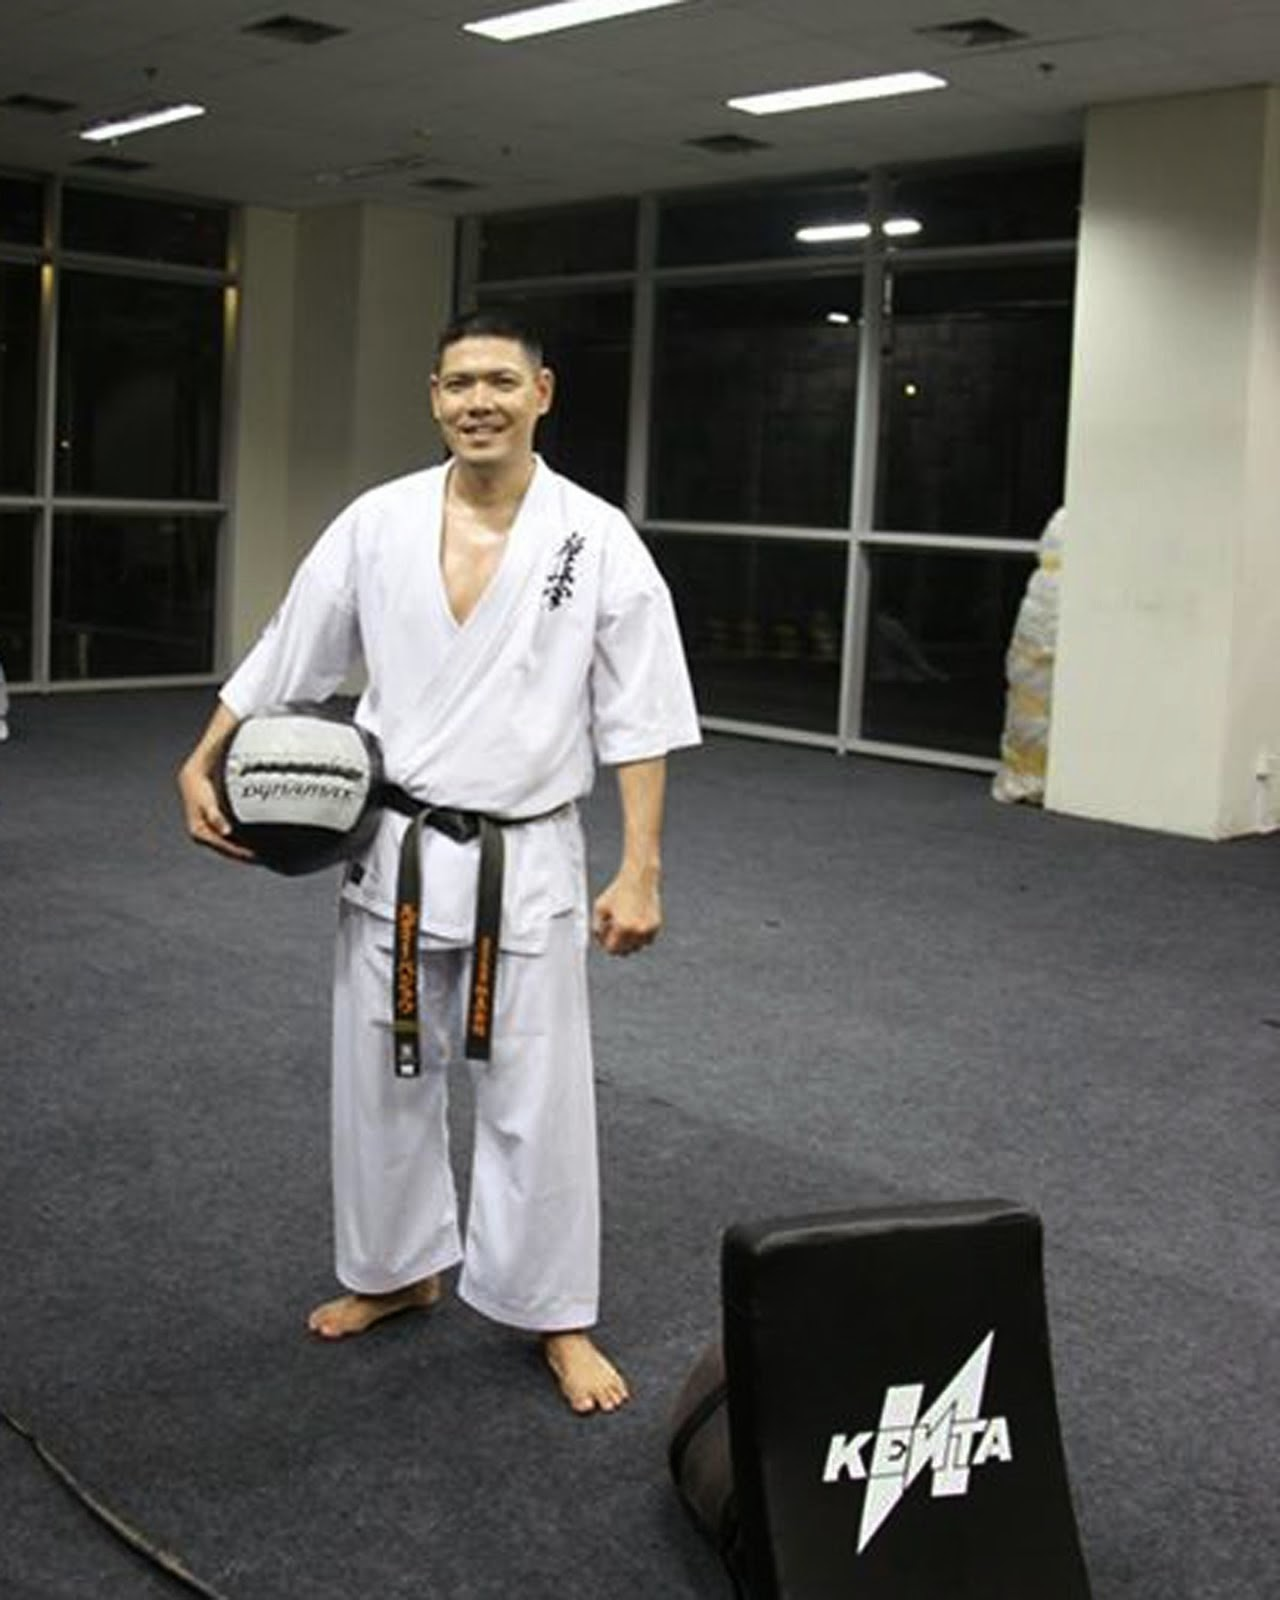 Kenta Martial Art Equipment